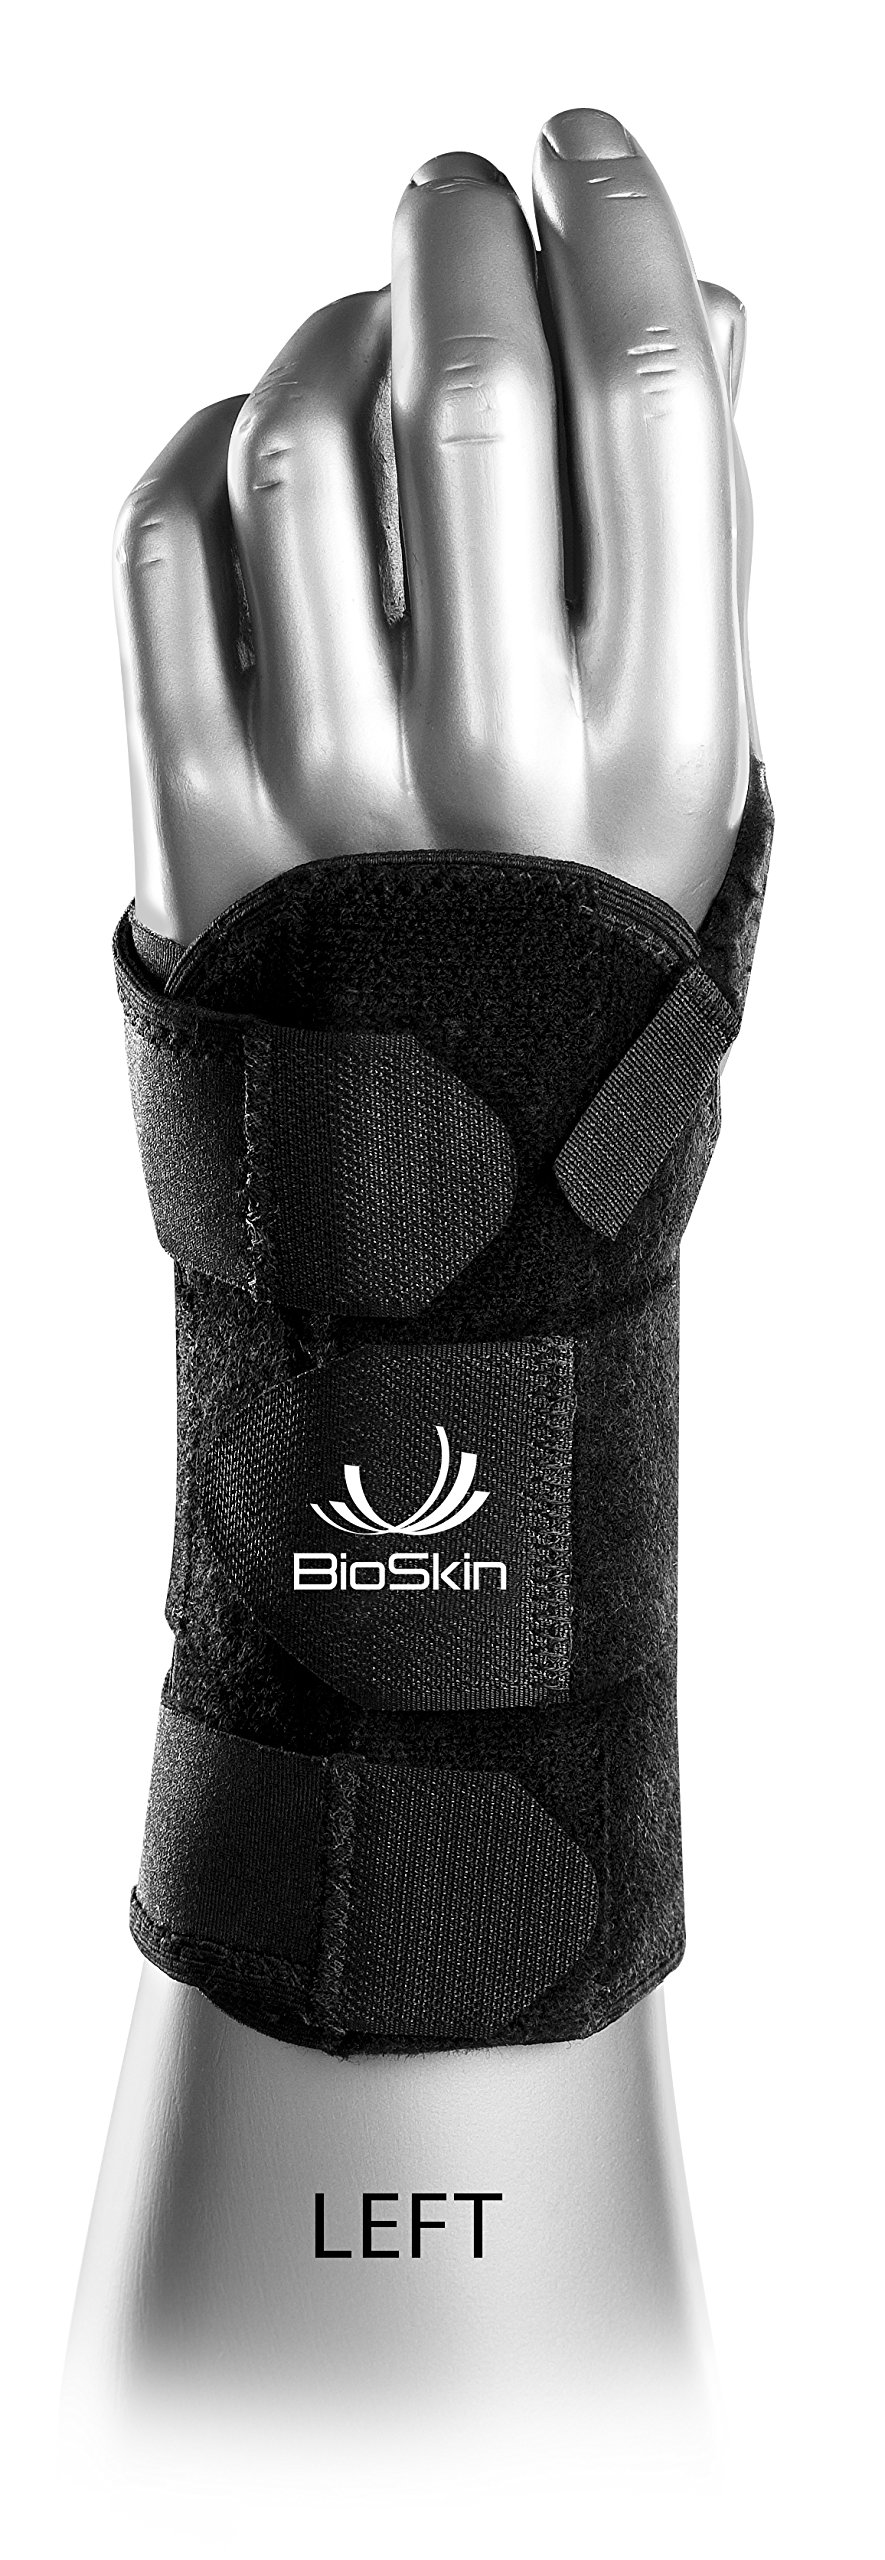 BioSkin DP2 Wrist Brace, Left Hands, Medium/Large